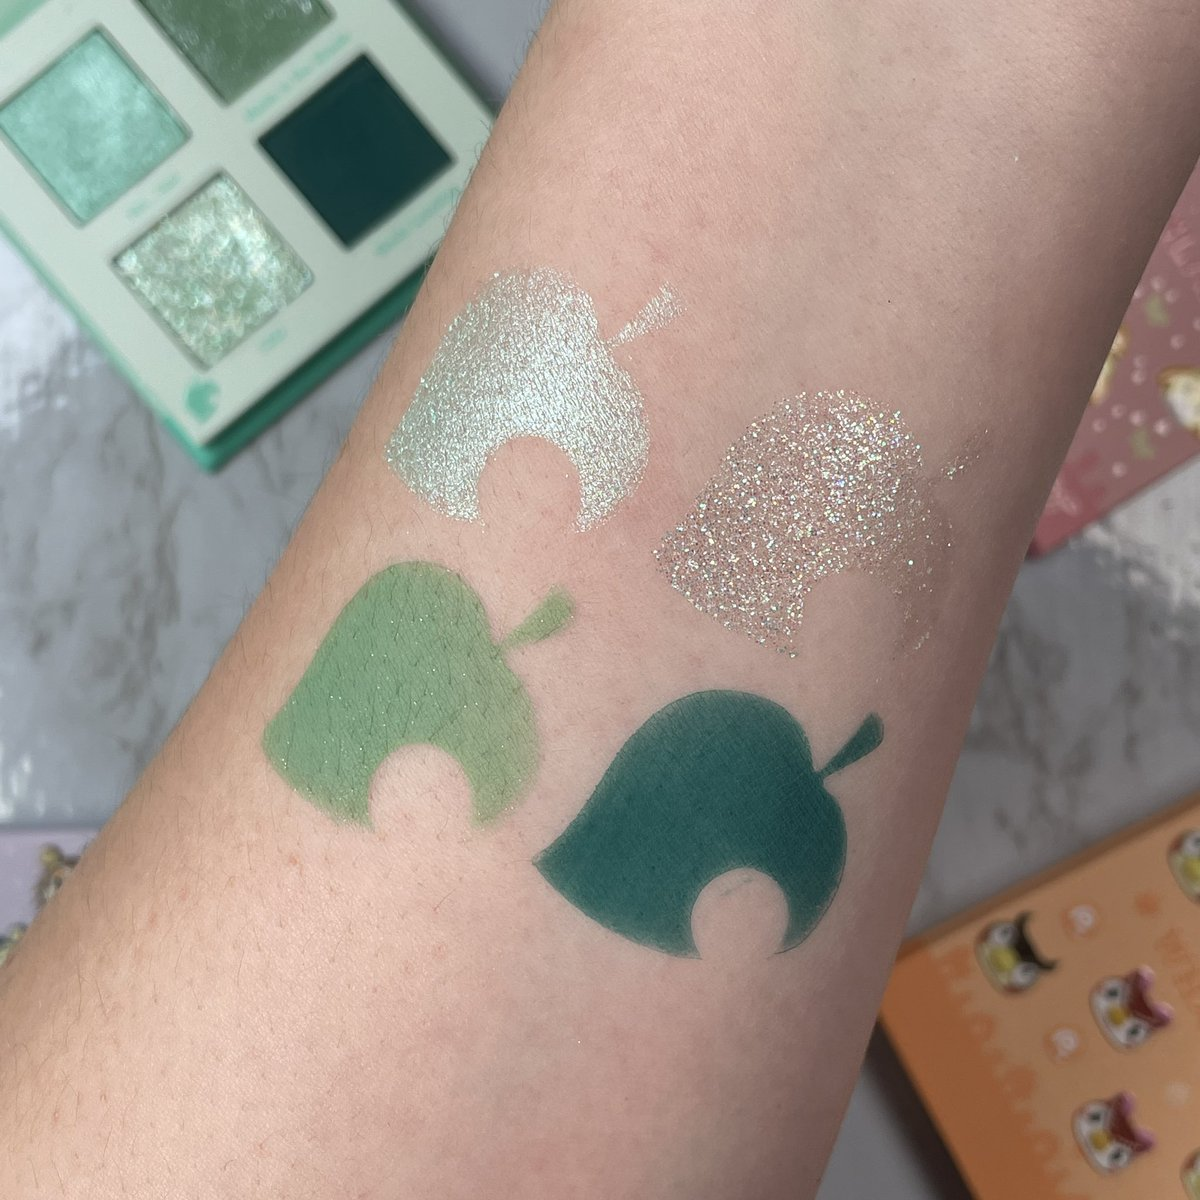 I'm obsessed @ColourPopCo #animalcrossingxcolourpop